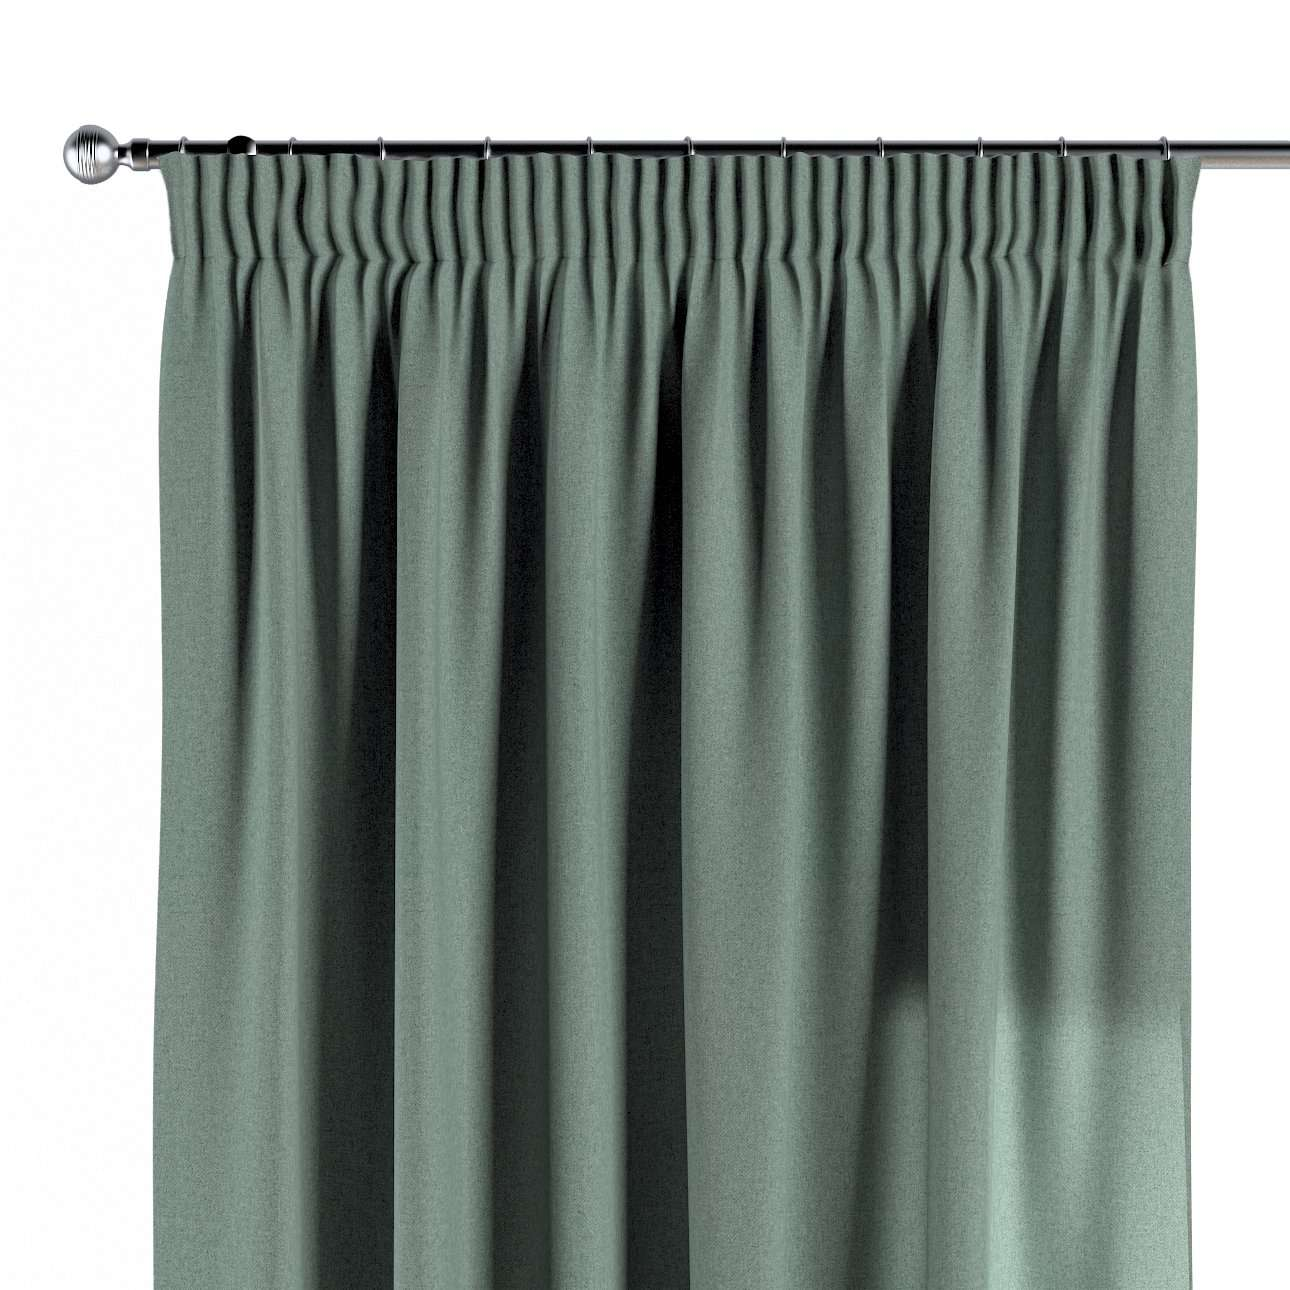 Pencil pleat curtains in collection Woolly, fabric: 142-31